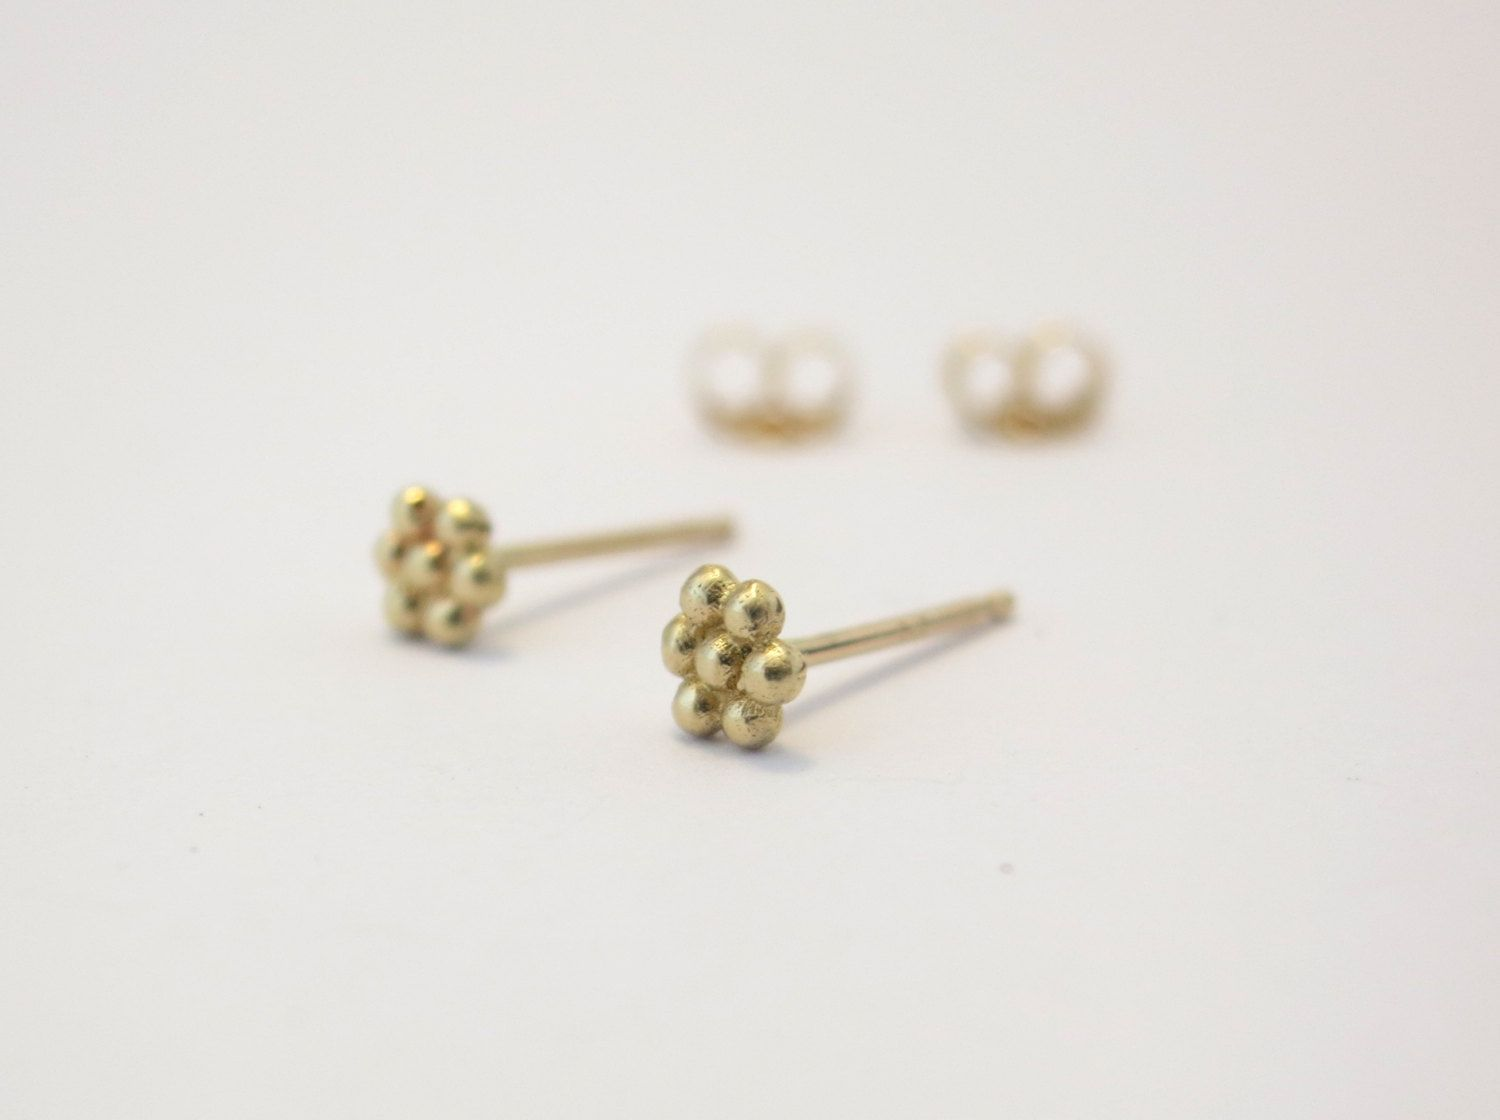 hk tiny fullxfull gold earrings stud listing zoom en il diamonds diamond studs